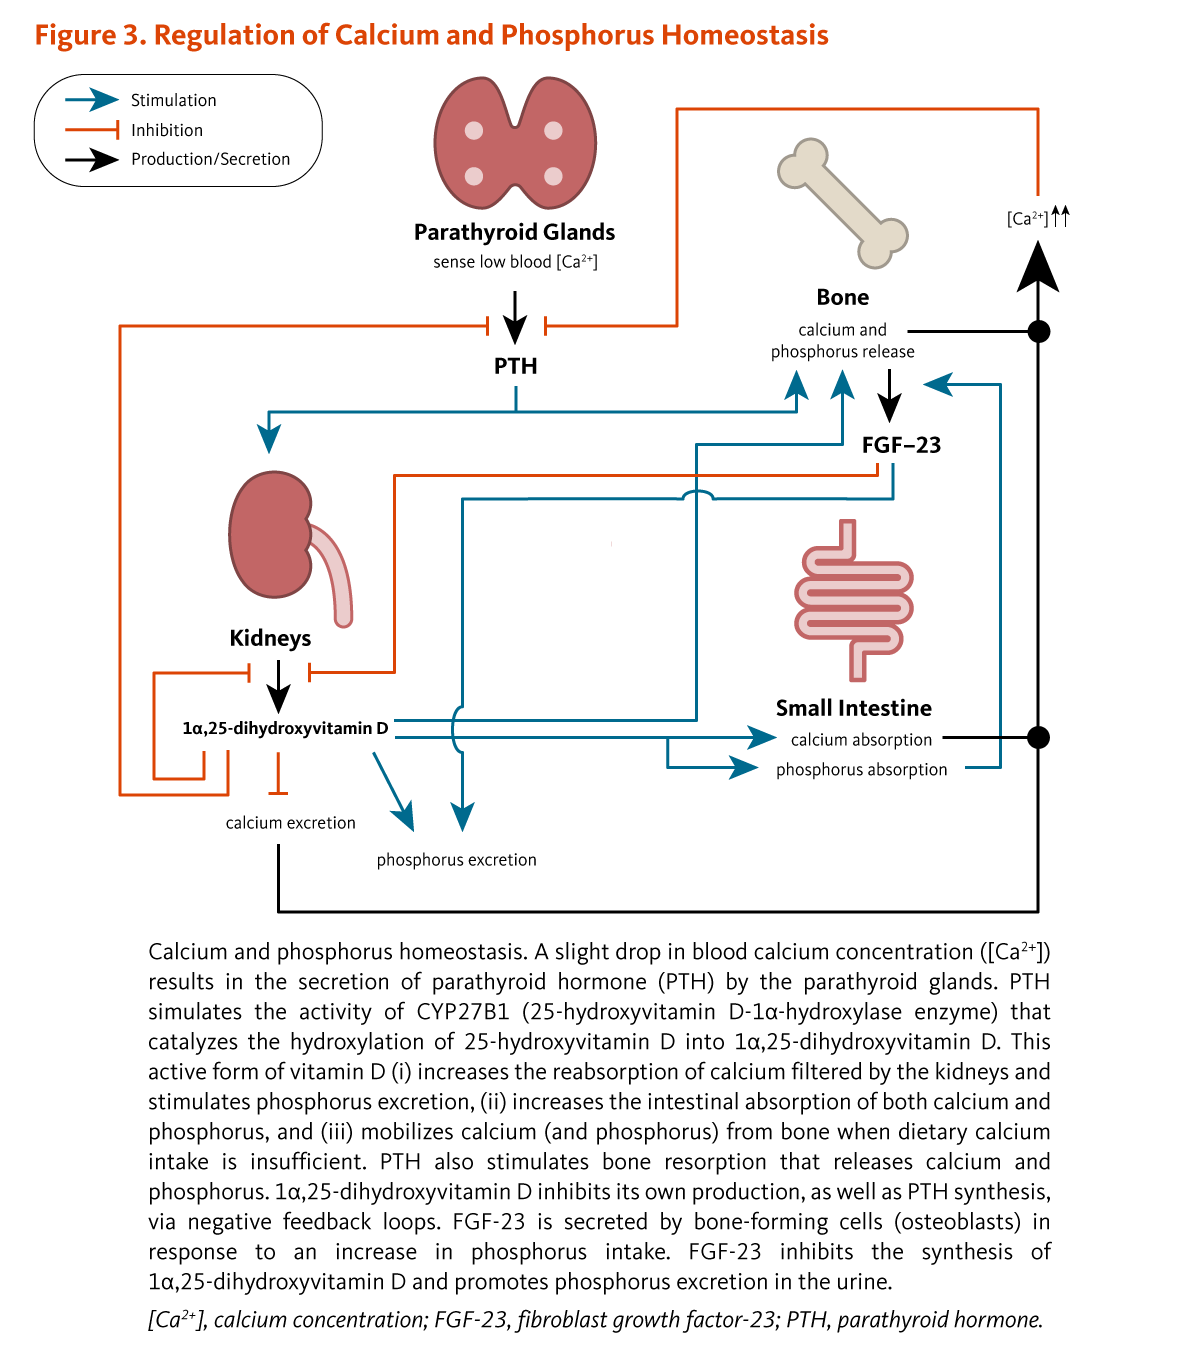 b6aee9a368b92 Figure 3. Regulation of Calcium and Phosphorus Homeostasis. Calcium and  phosphorus homeostasis. A